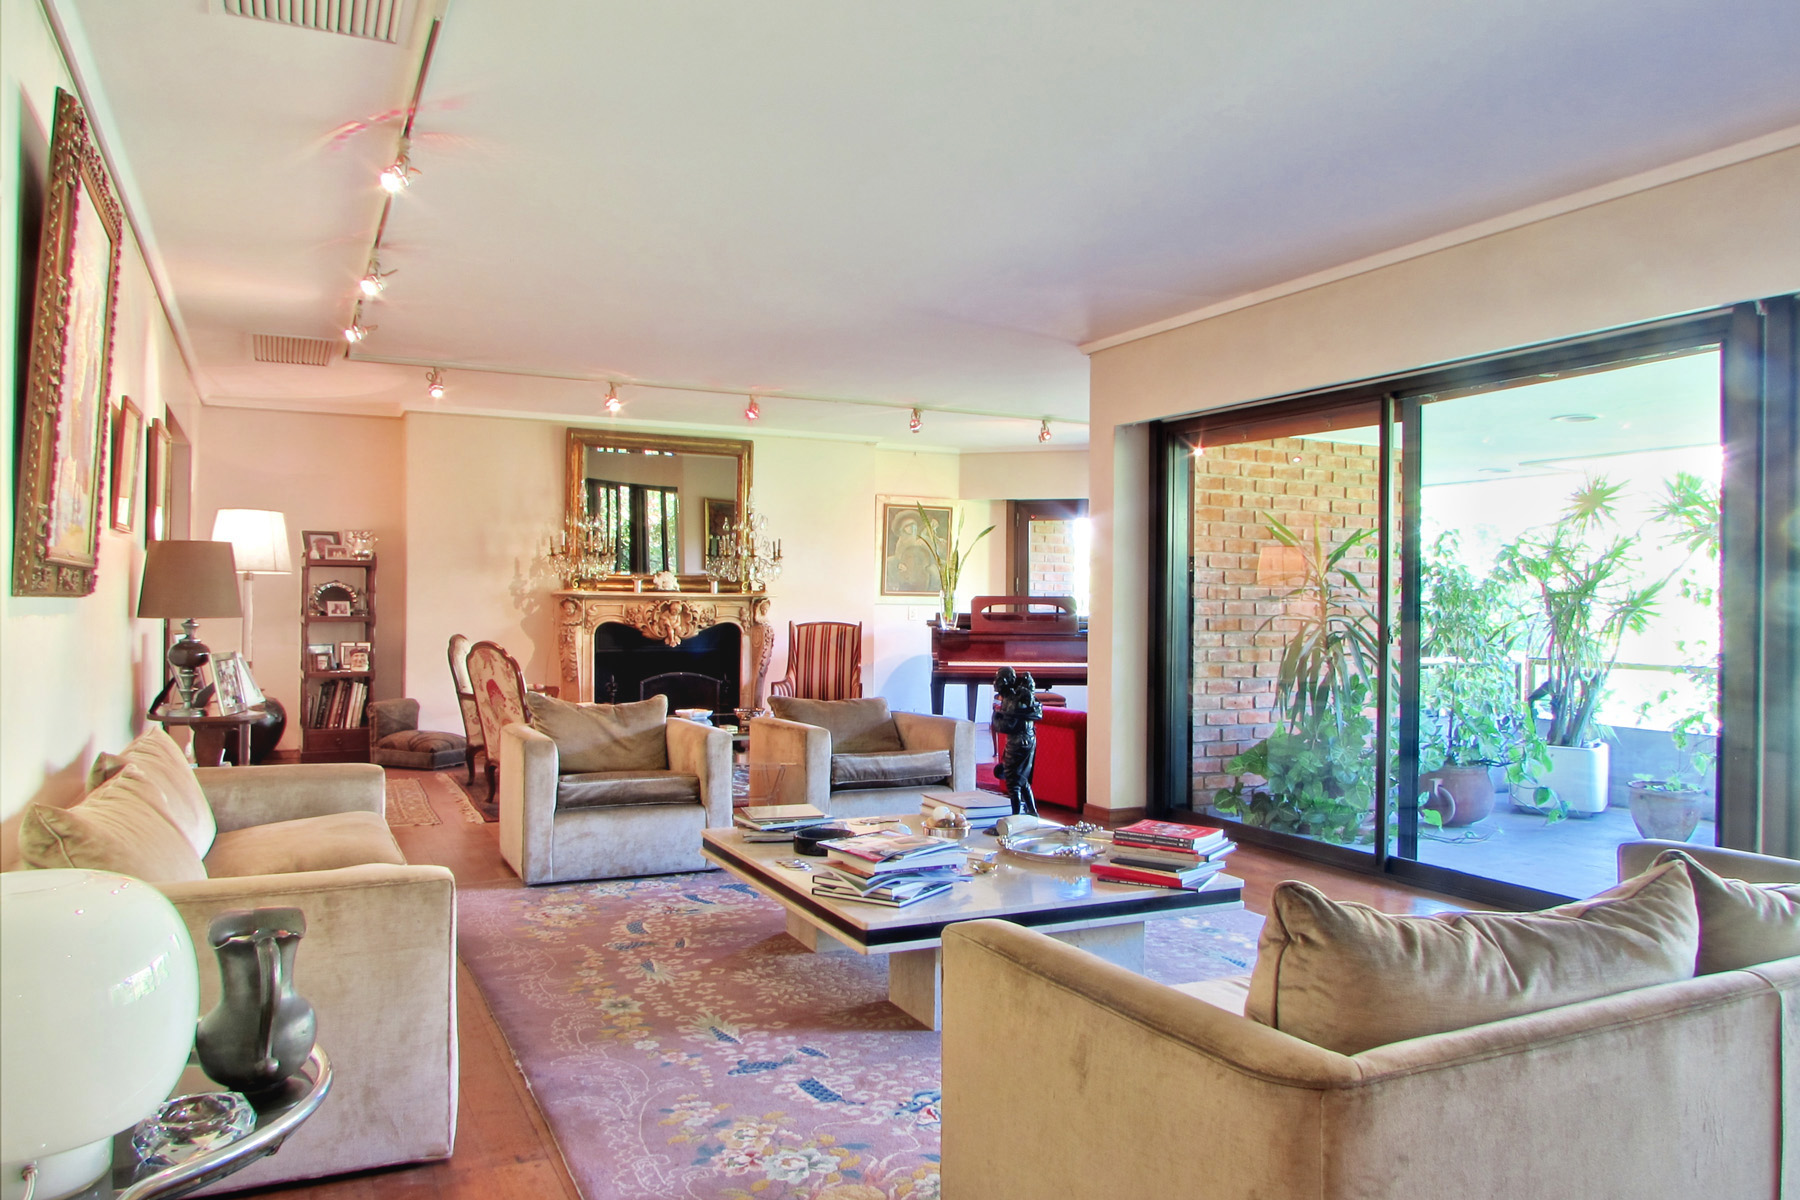 Apartments for Sale at Luxury Penthouse in Palermo Chico Aguado 2800 Buenos Aires, Buenos Aires 1425 Argentina